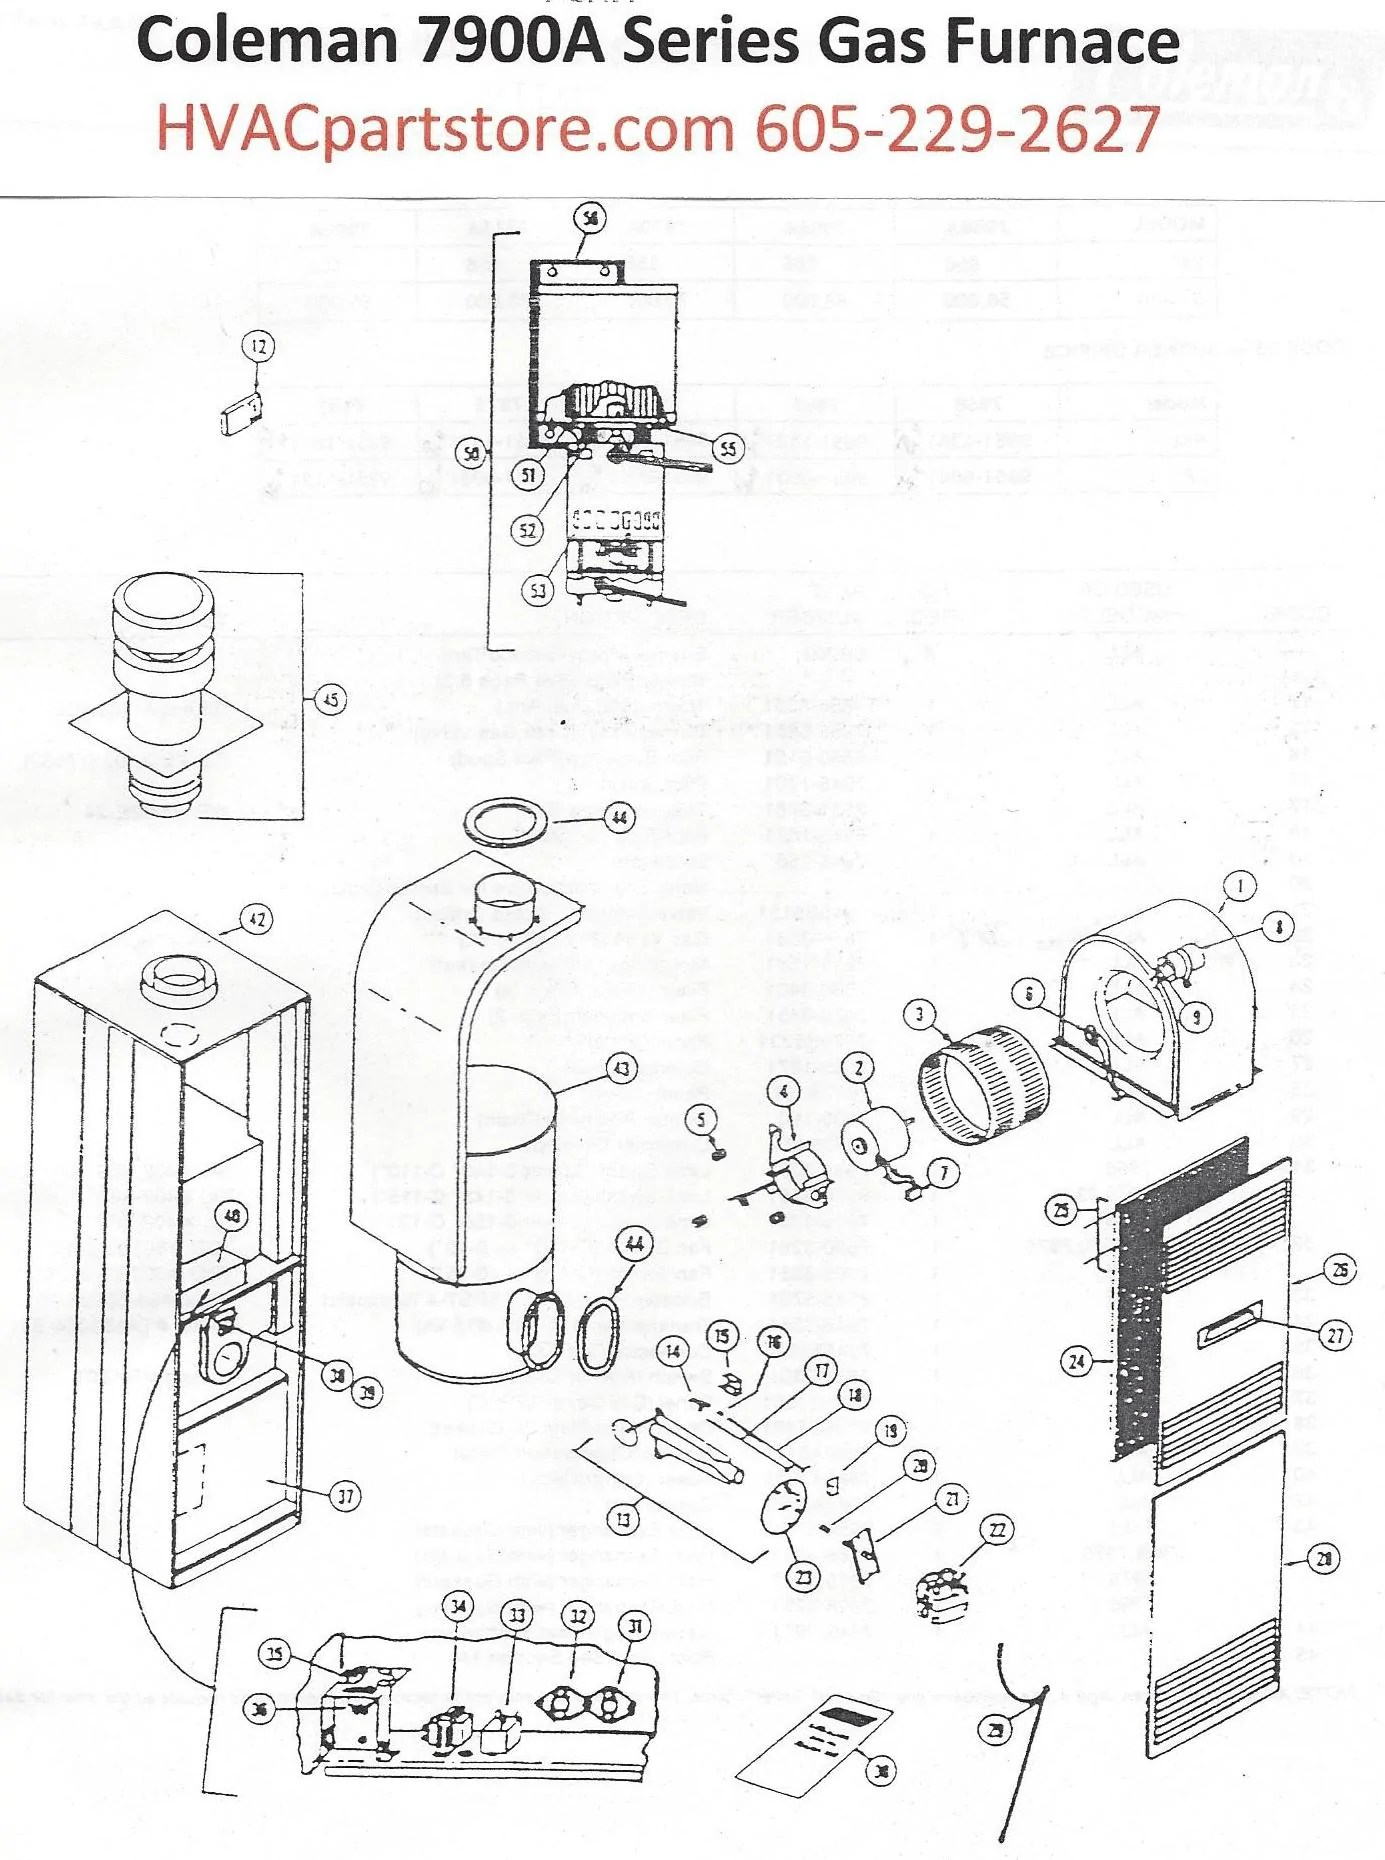 small resolution of 7975a856 coleman gas furnace parts u2013 hvacpartstore coleman heater wiring diagram eb17b coleman electric